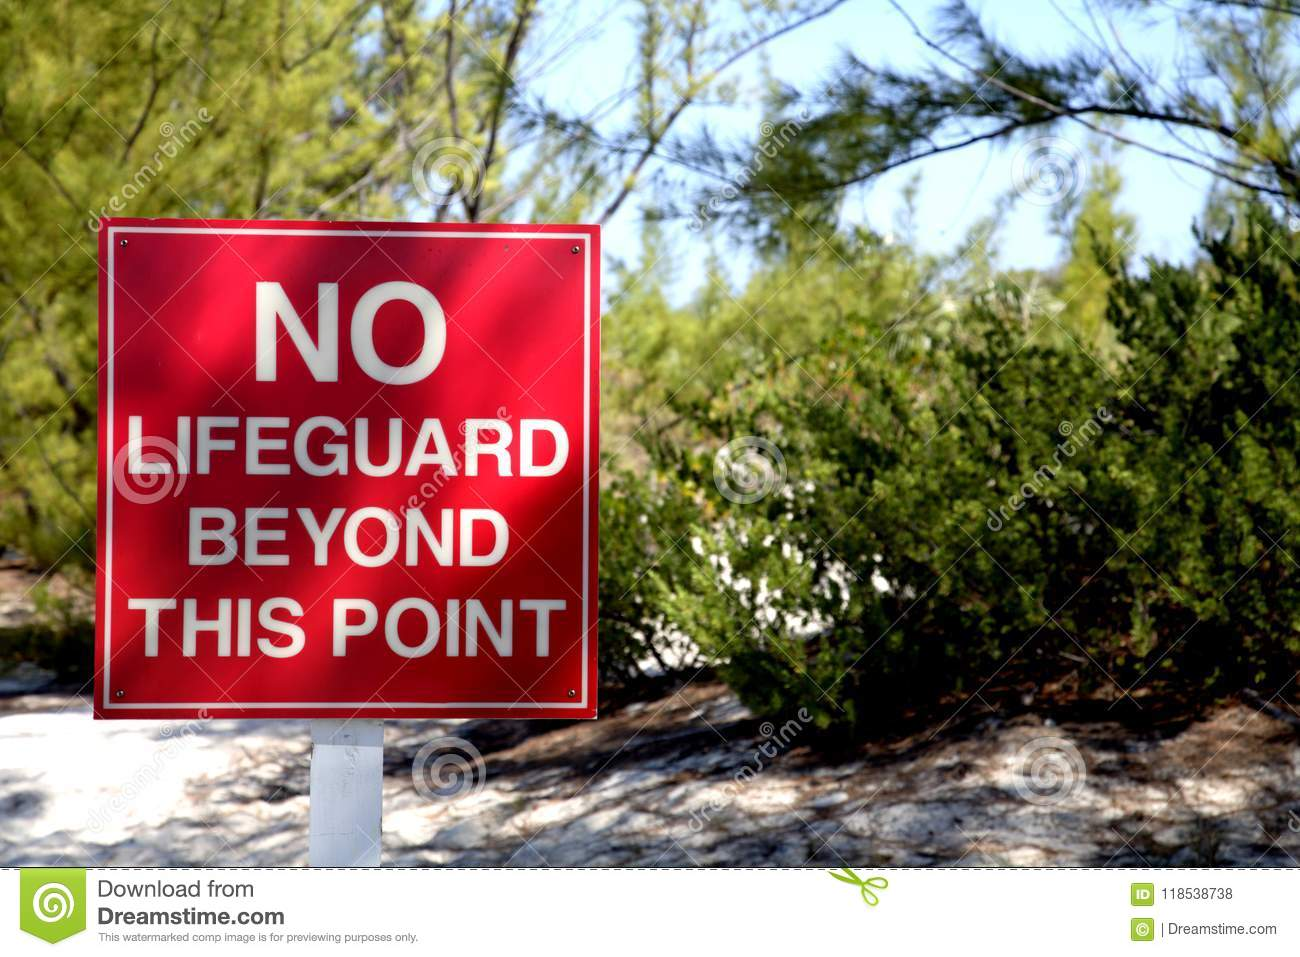 No Lifeguard beyond this point